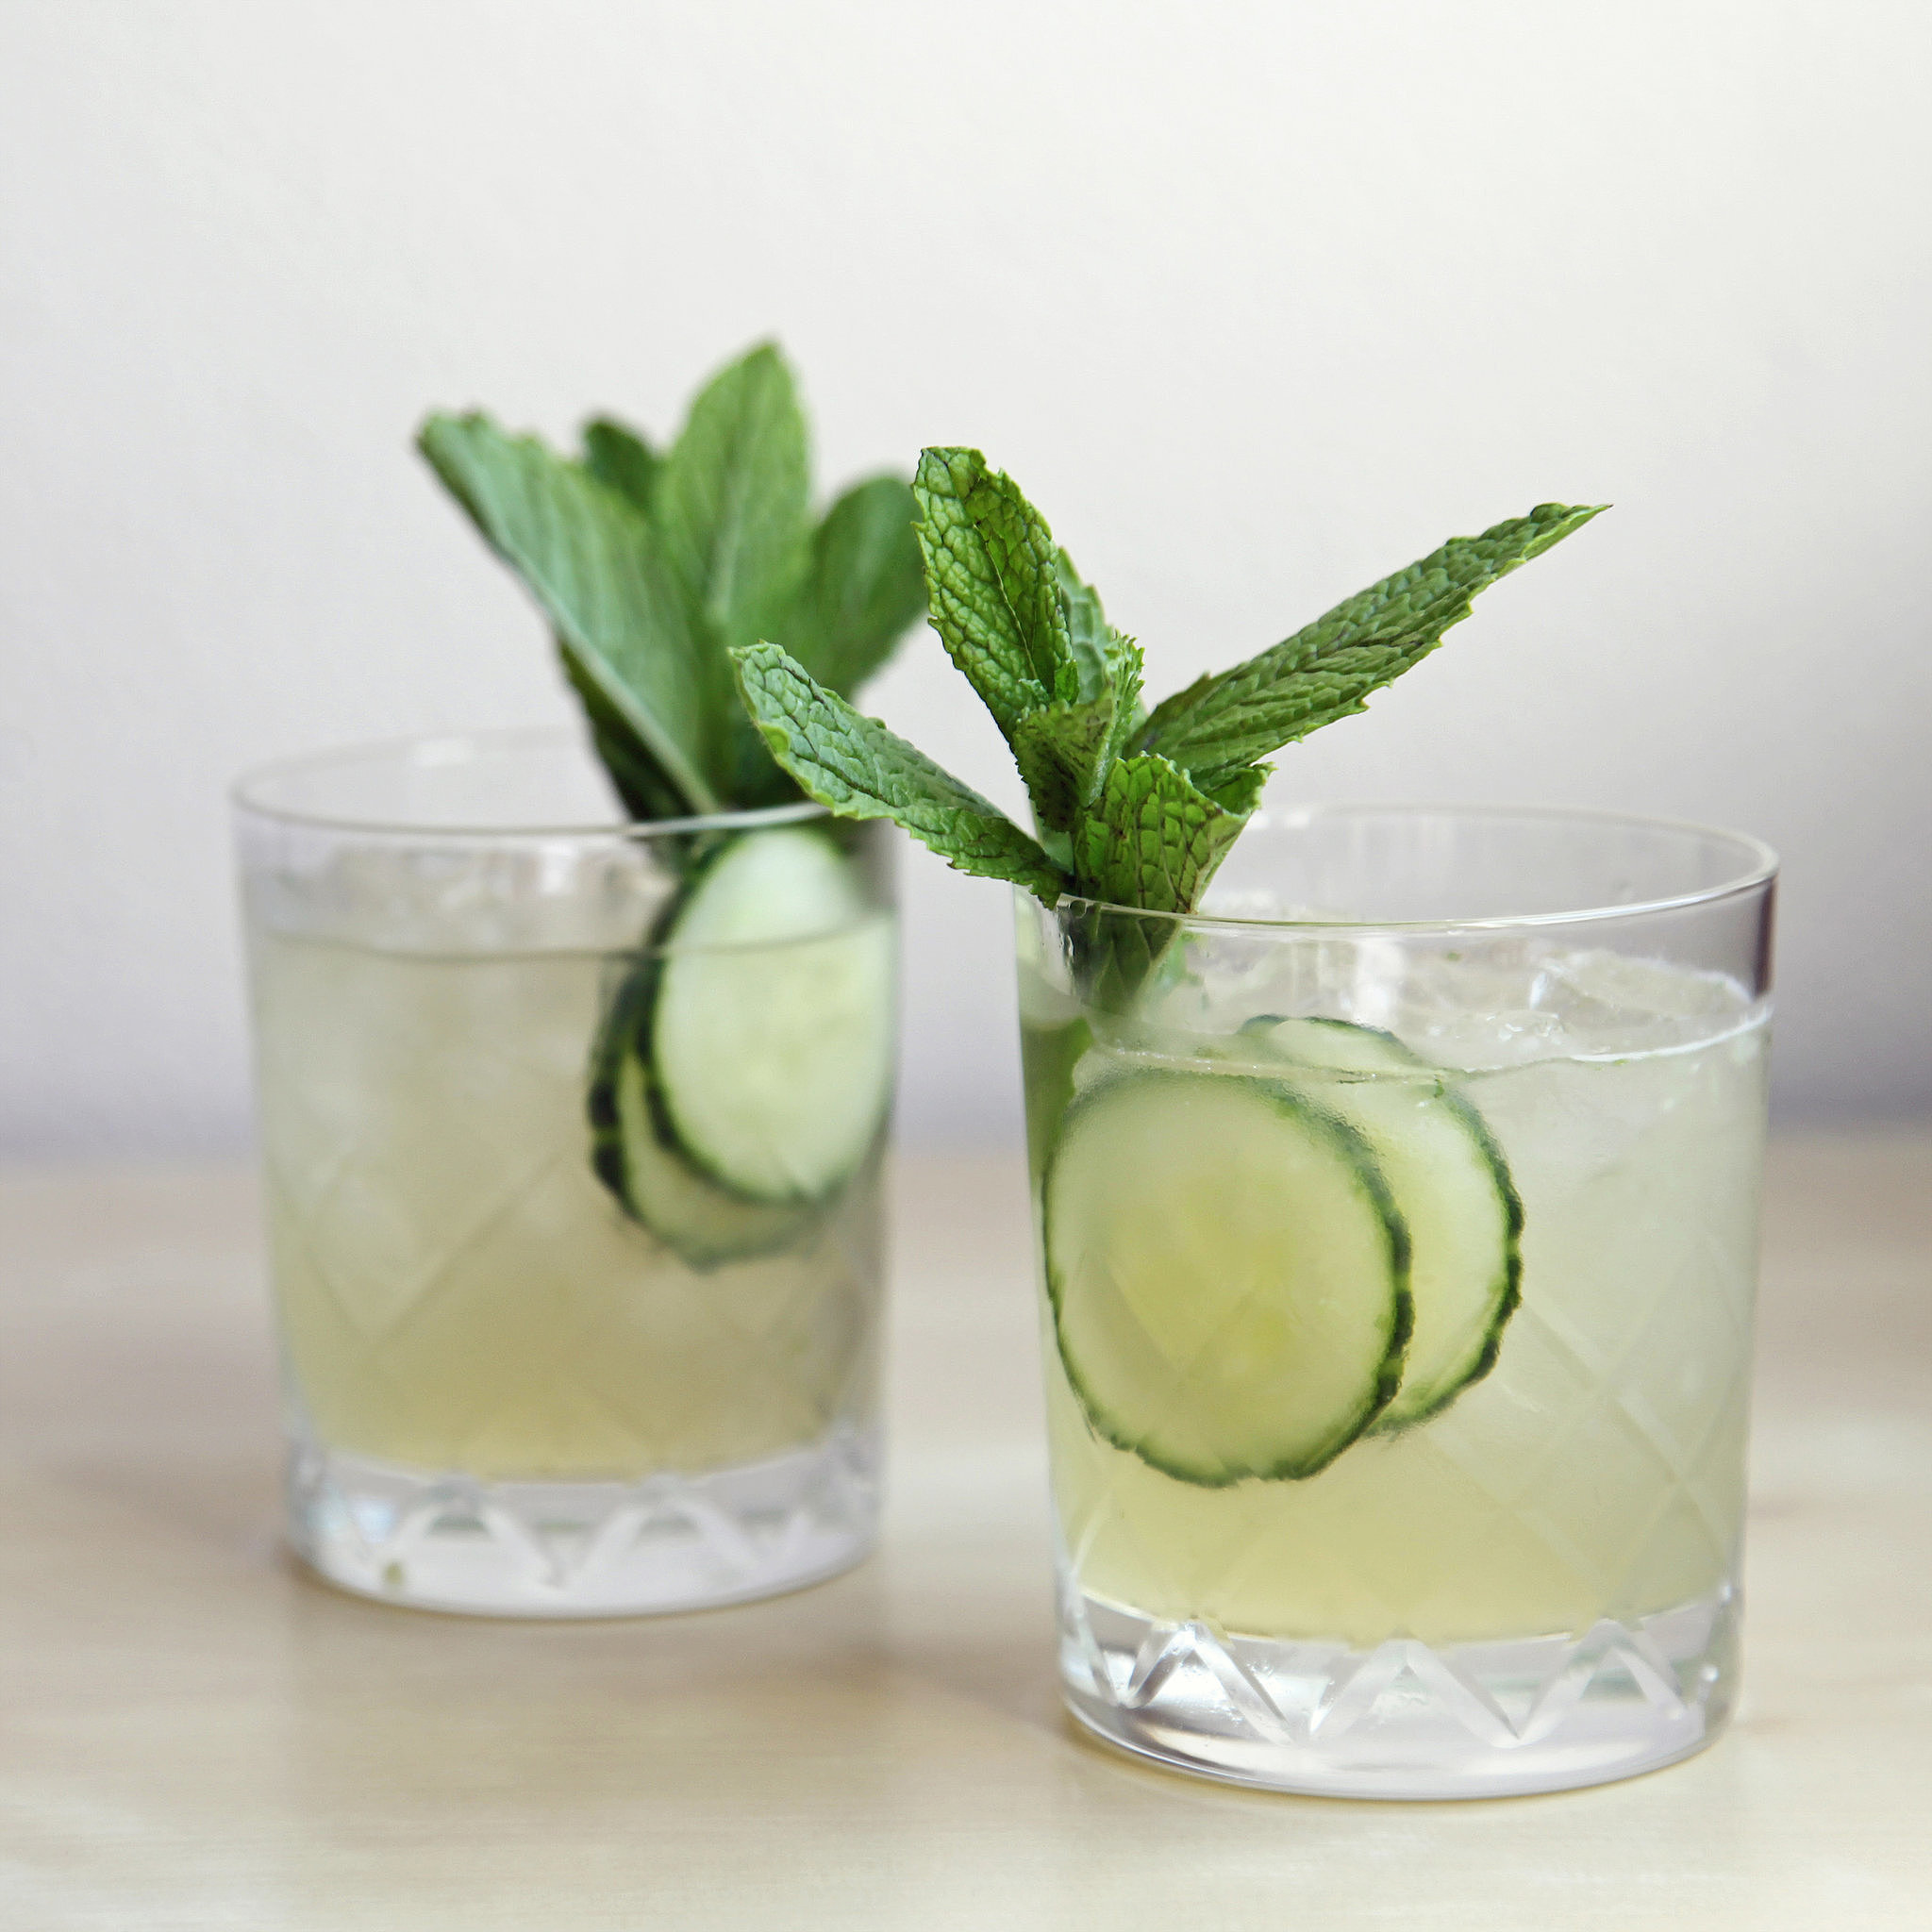 Chill Out With This Green Tea Lime Cooler   FitSugar   Bloglovin'